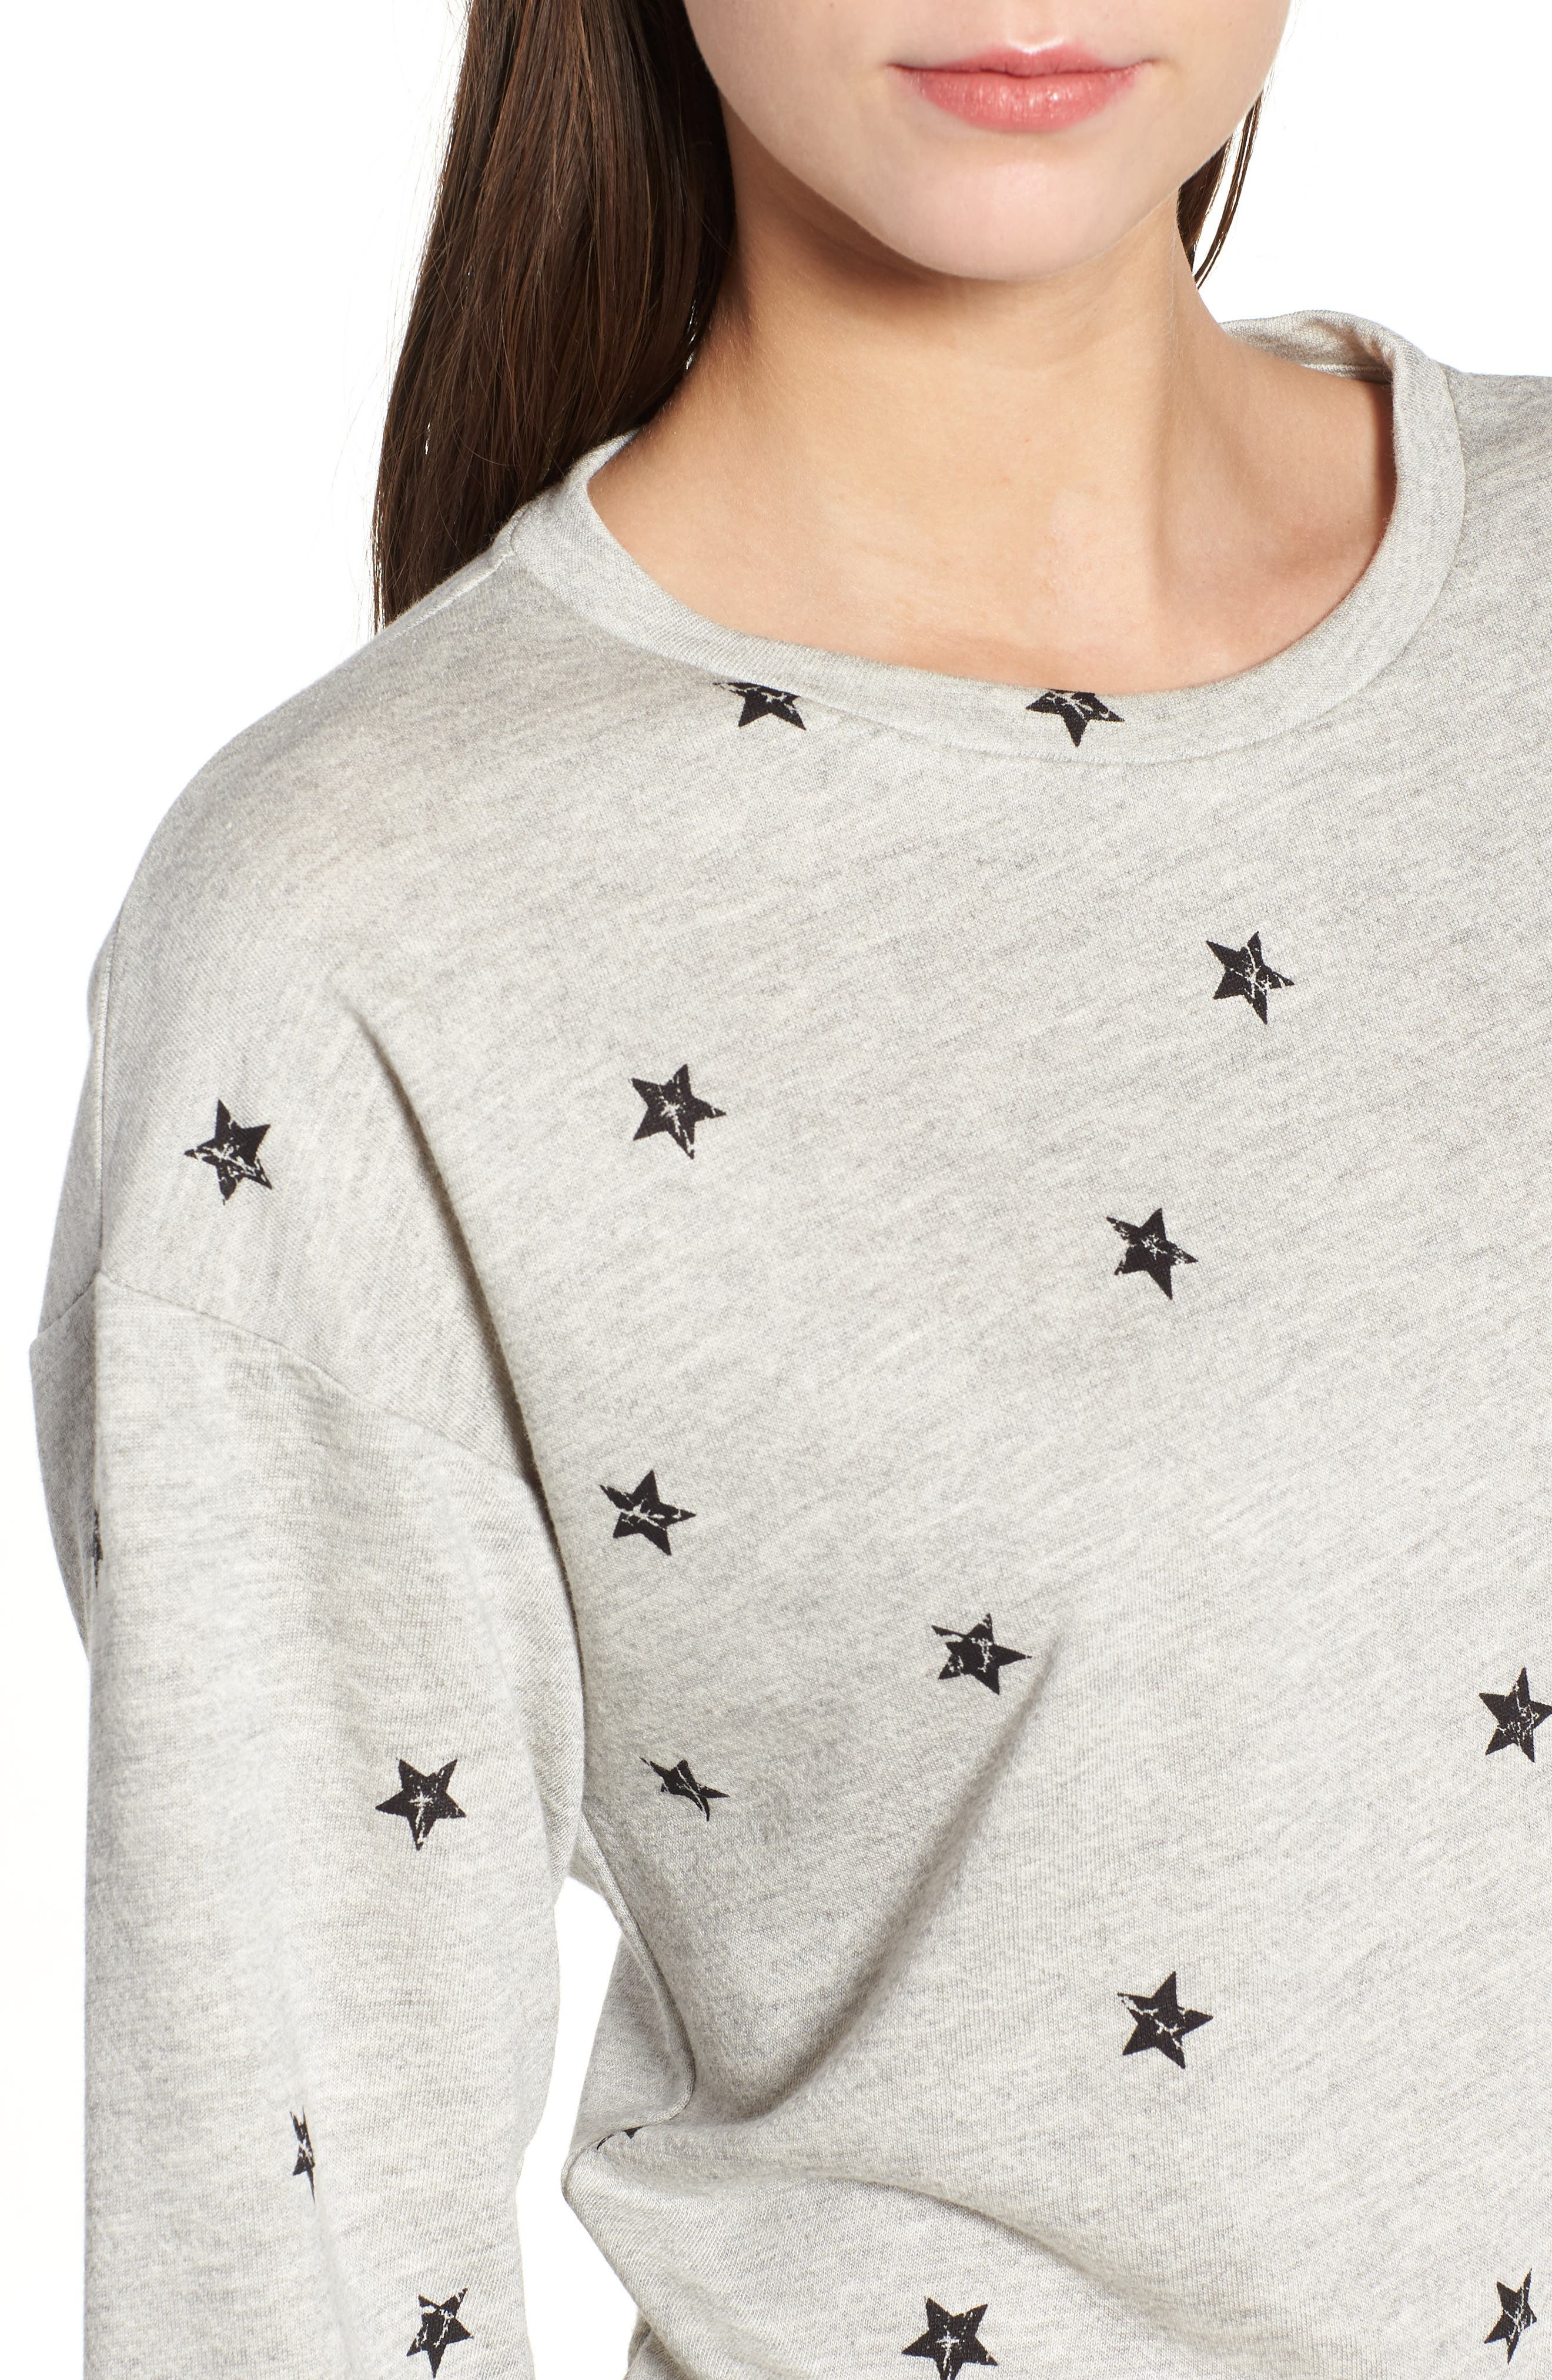 Star Print Sweatshirt,                             Alternate thumbnail 4, color,                             035